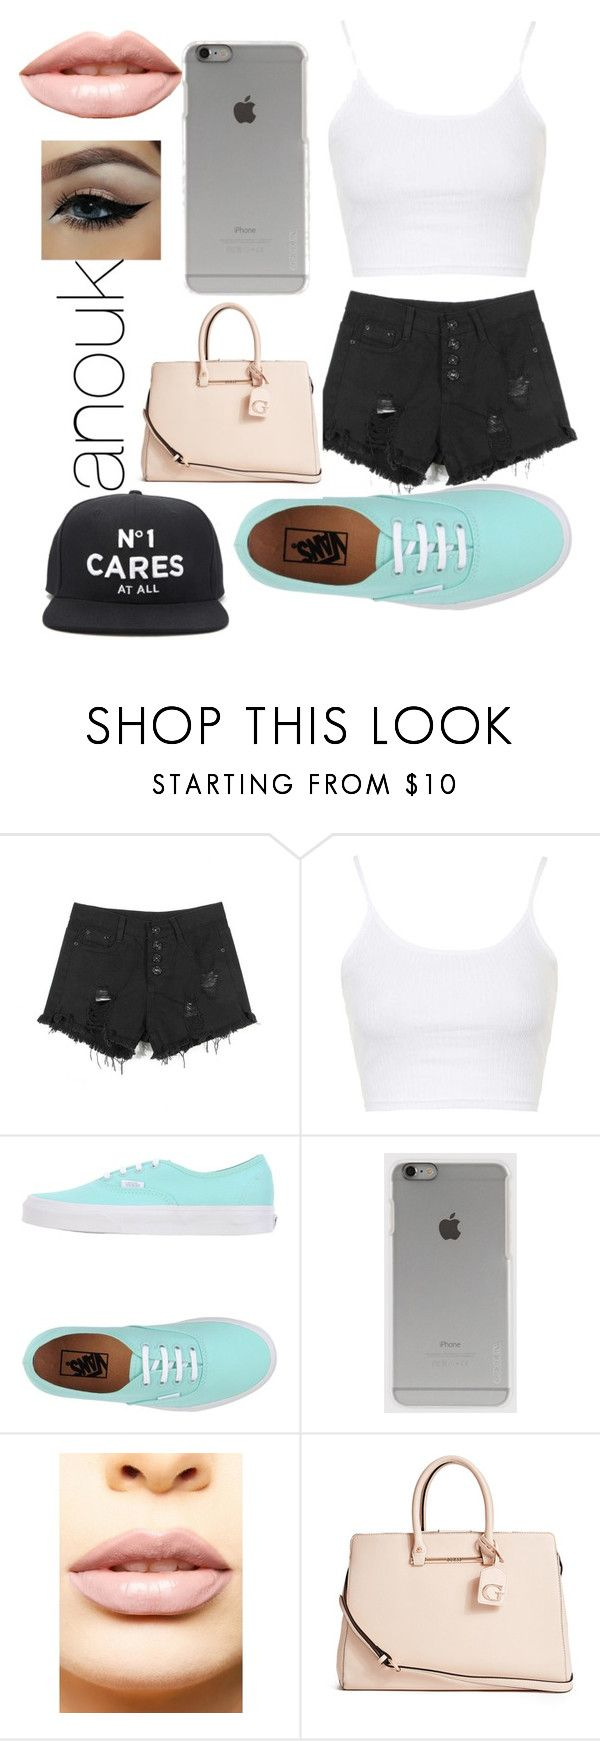 """Untitled #46"" by lauraederveen on Polyvore featuring Topshop, Vans, Incase, LASplash, GUESS, Forever 21, women's clothing, women's fashion, women and female"